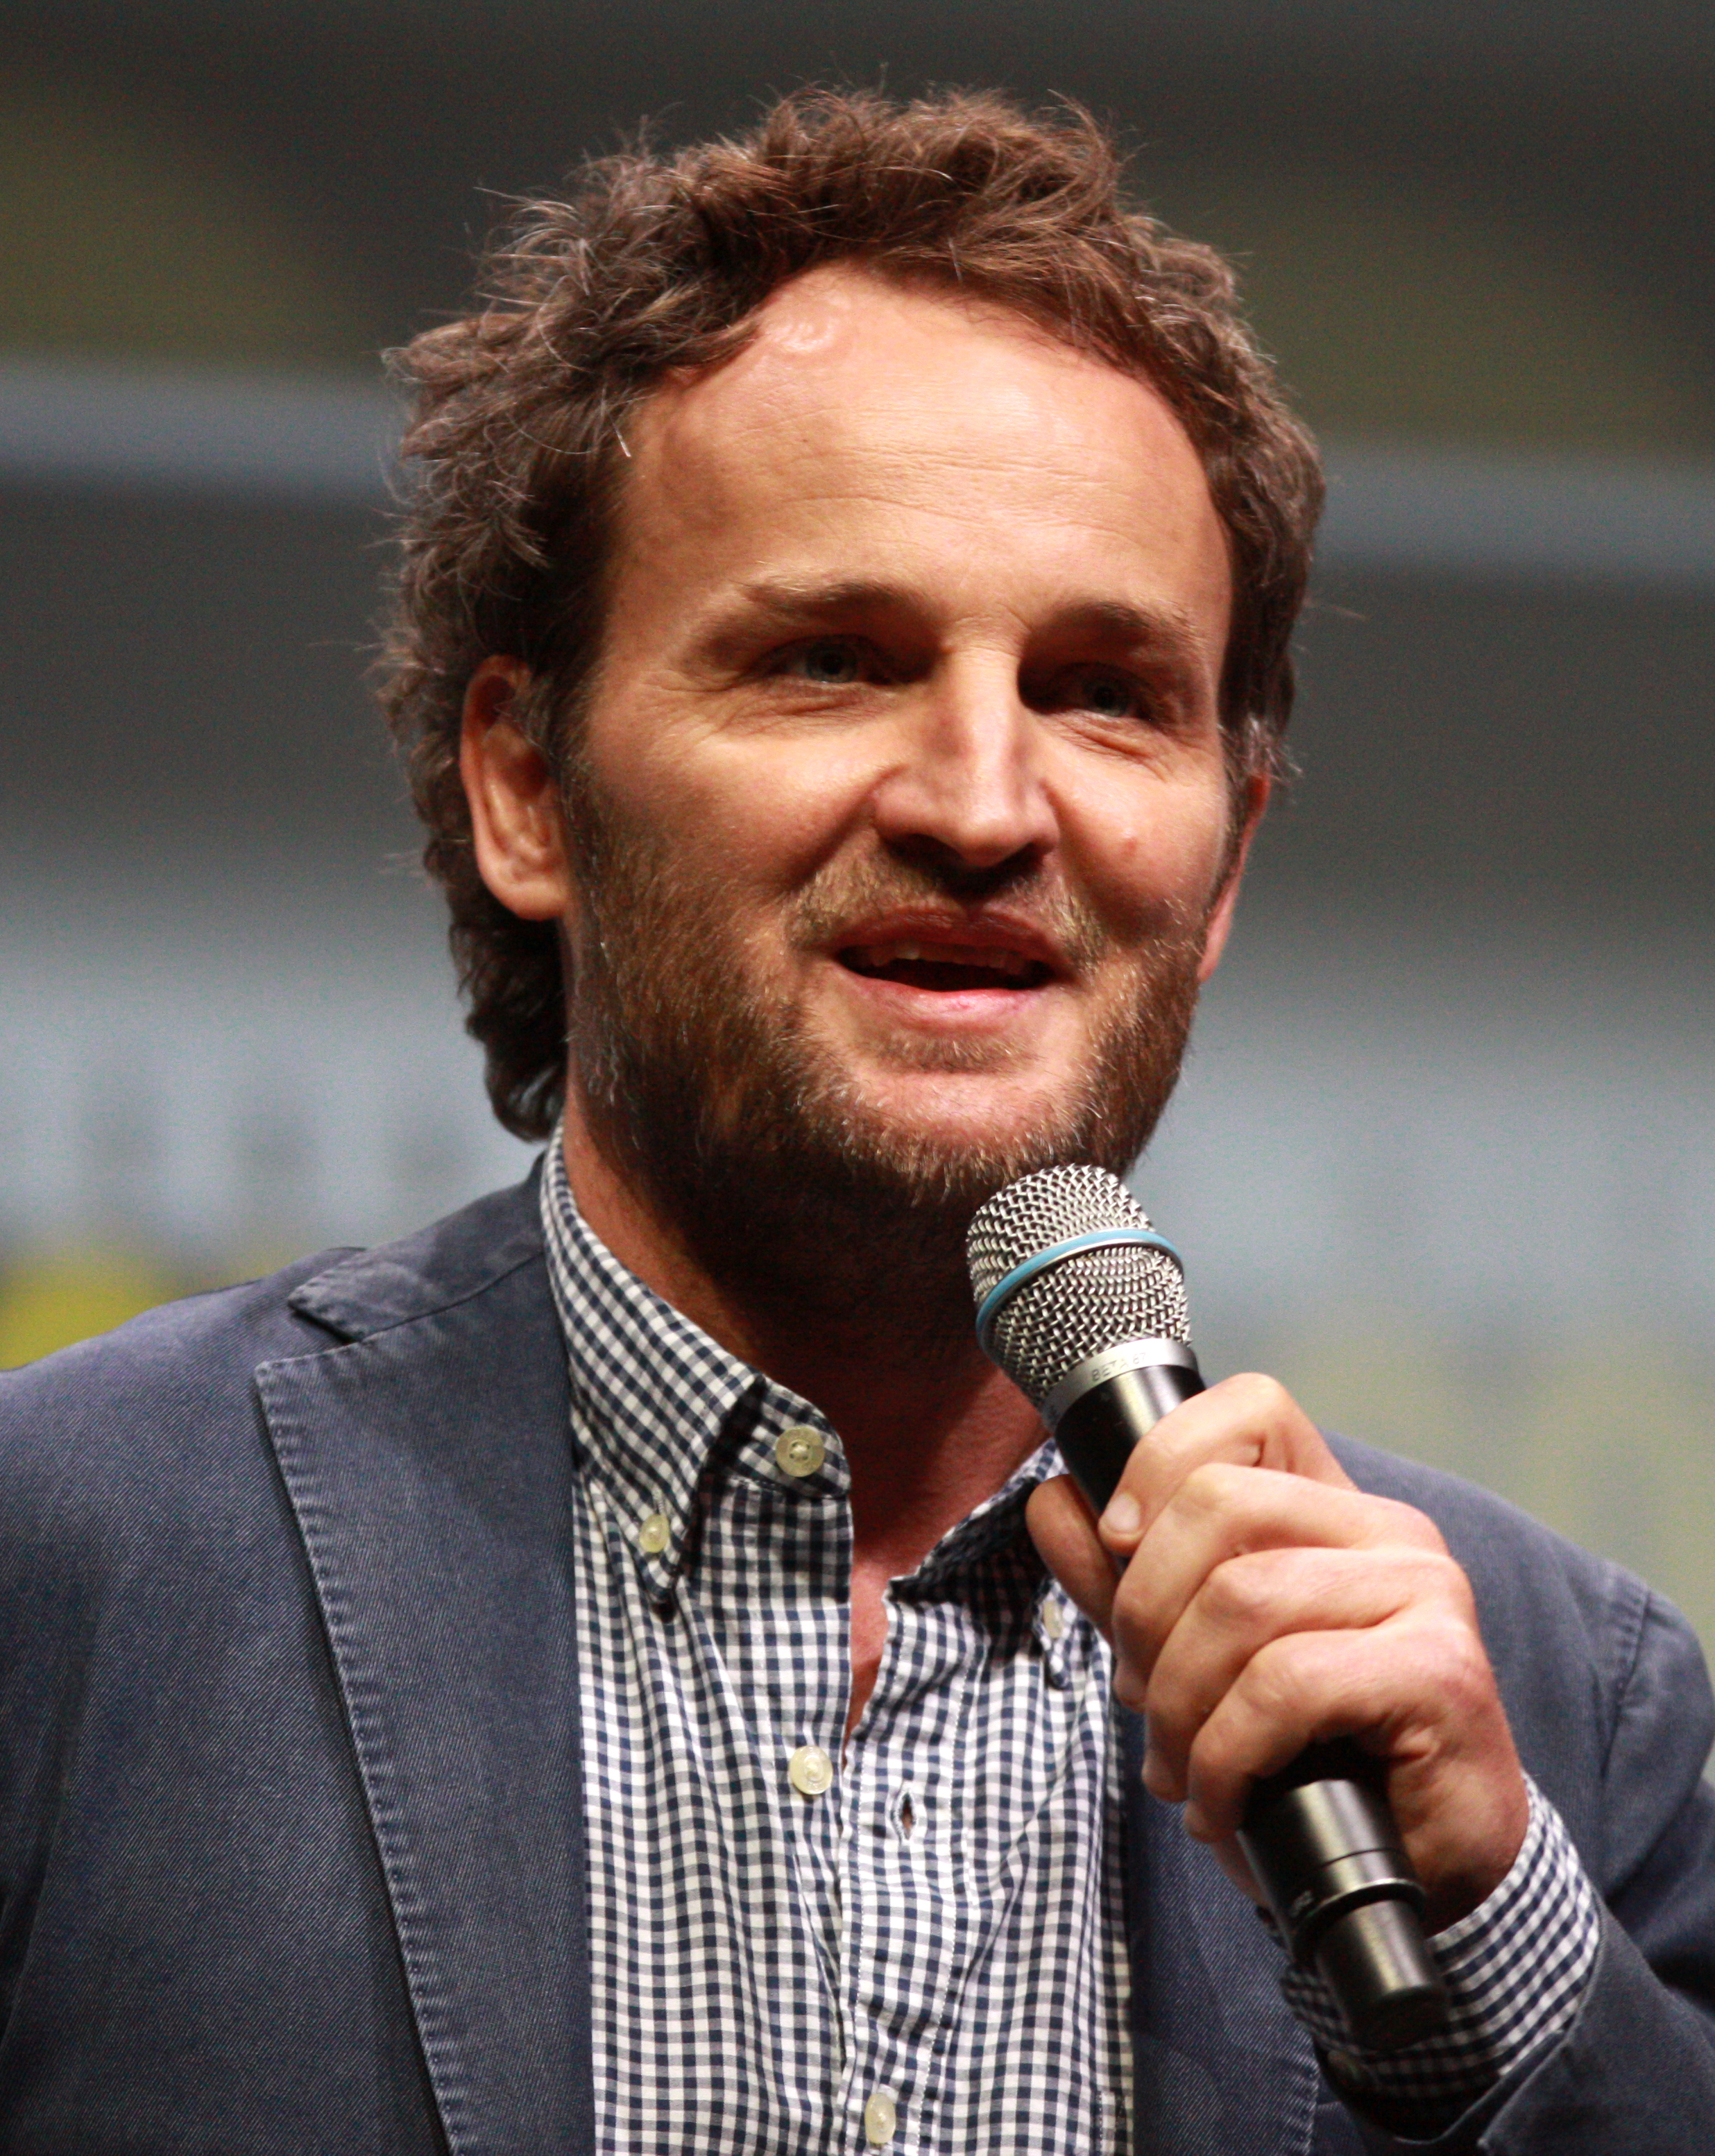 The 49-year old son of father (?) and mother(?) Jason Clarke in 2018 photo. Jason Clarke earned a  million dollar salary - leaving the net worth at 2 million in 2018